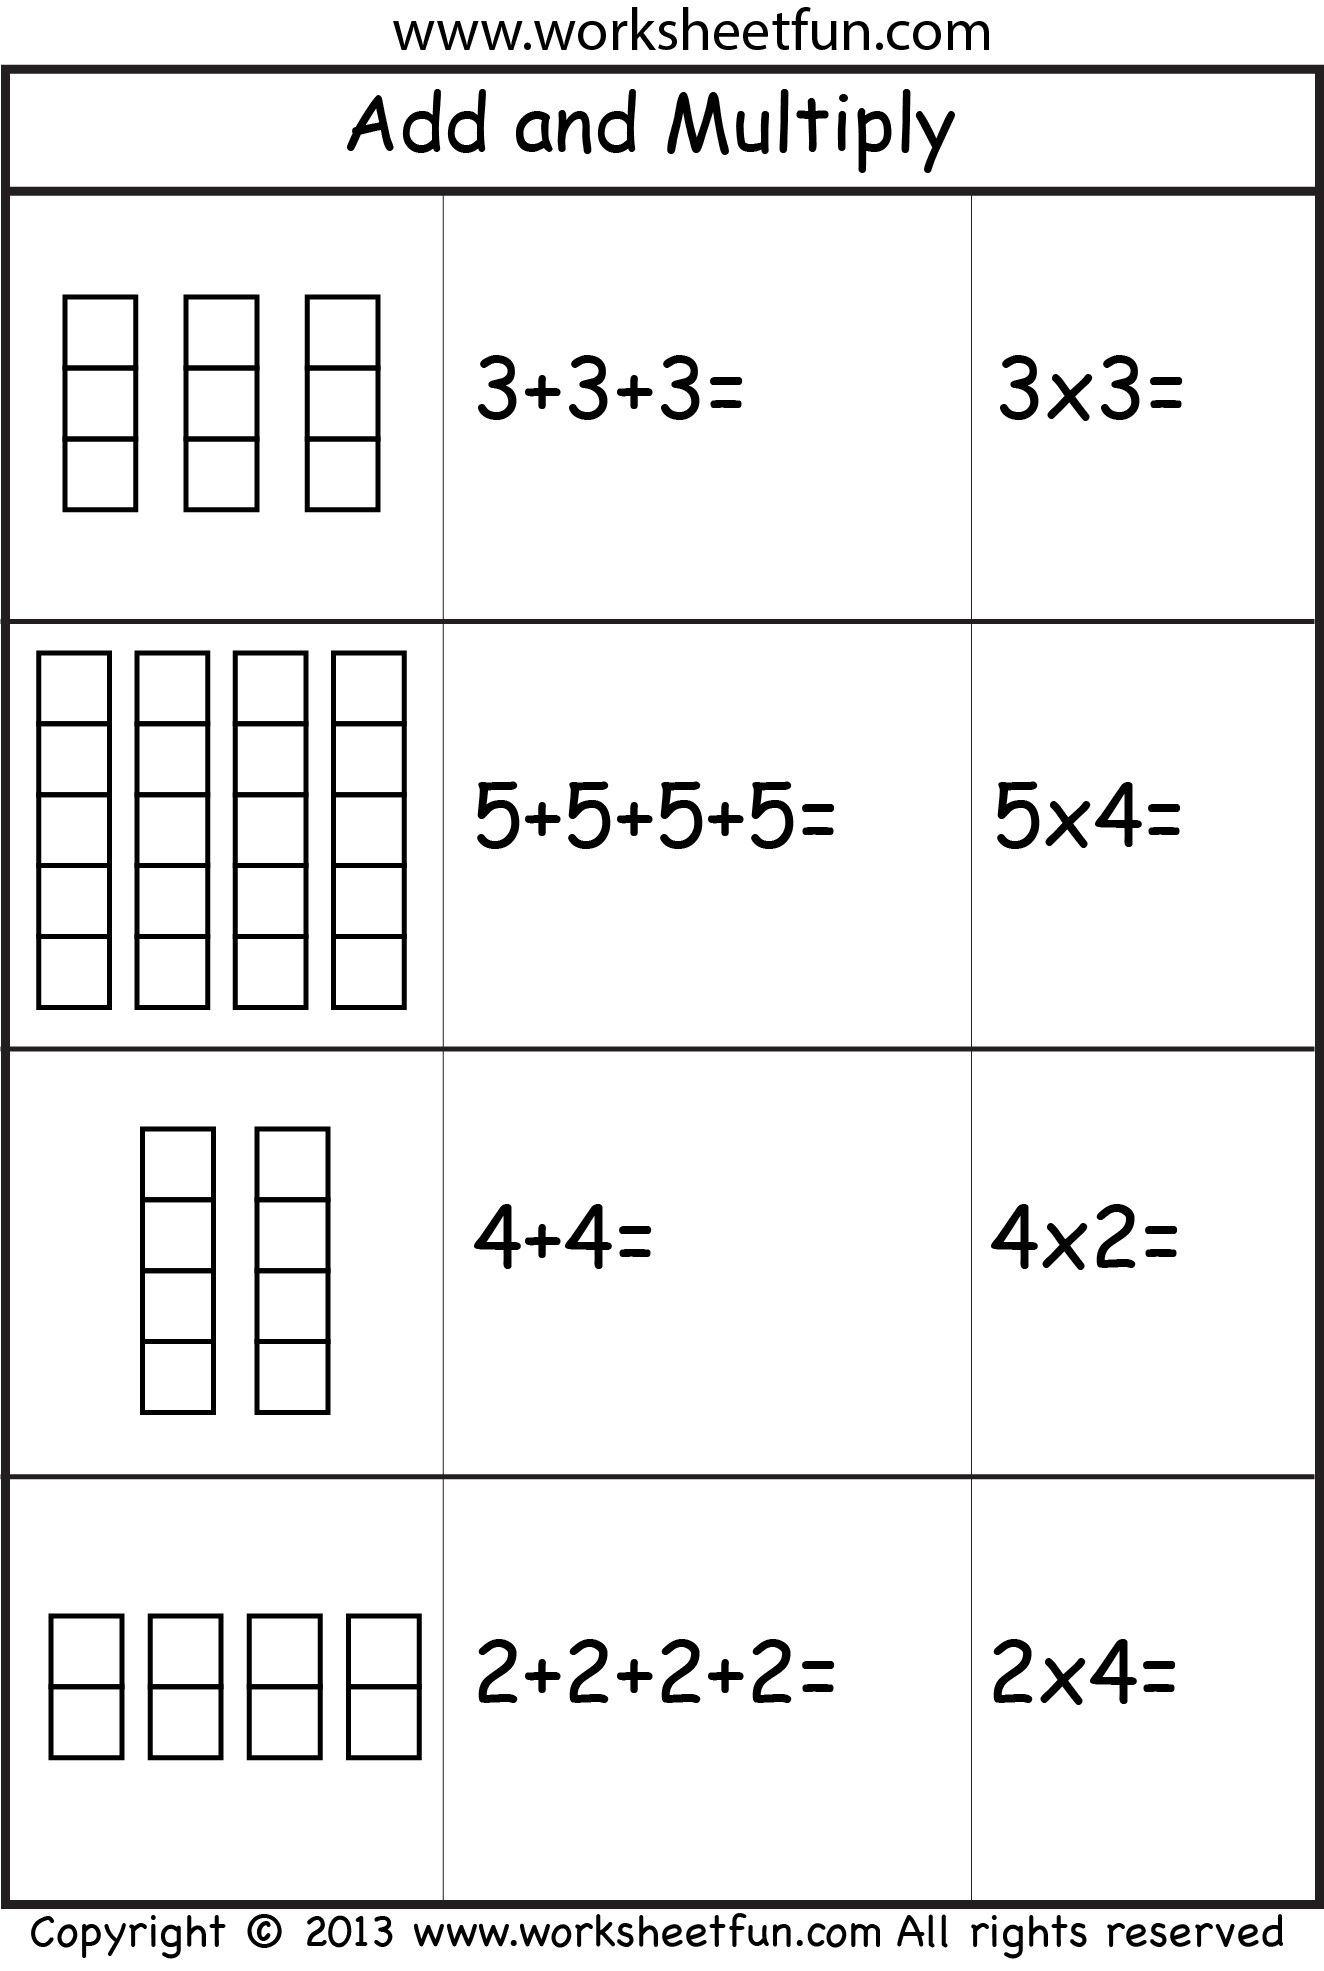 repeated addition multiplication worksheet arithmetic pinterest addition worksheets. Black Bedroom Furniture Sets. Home Design Ideas